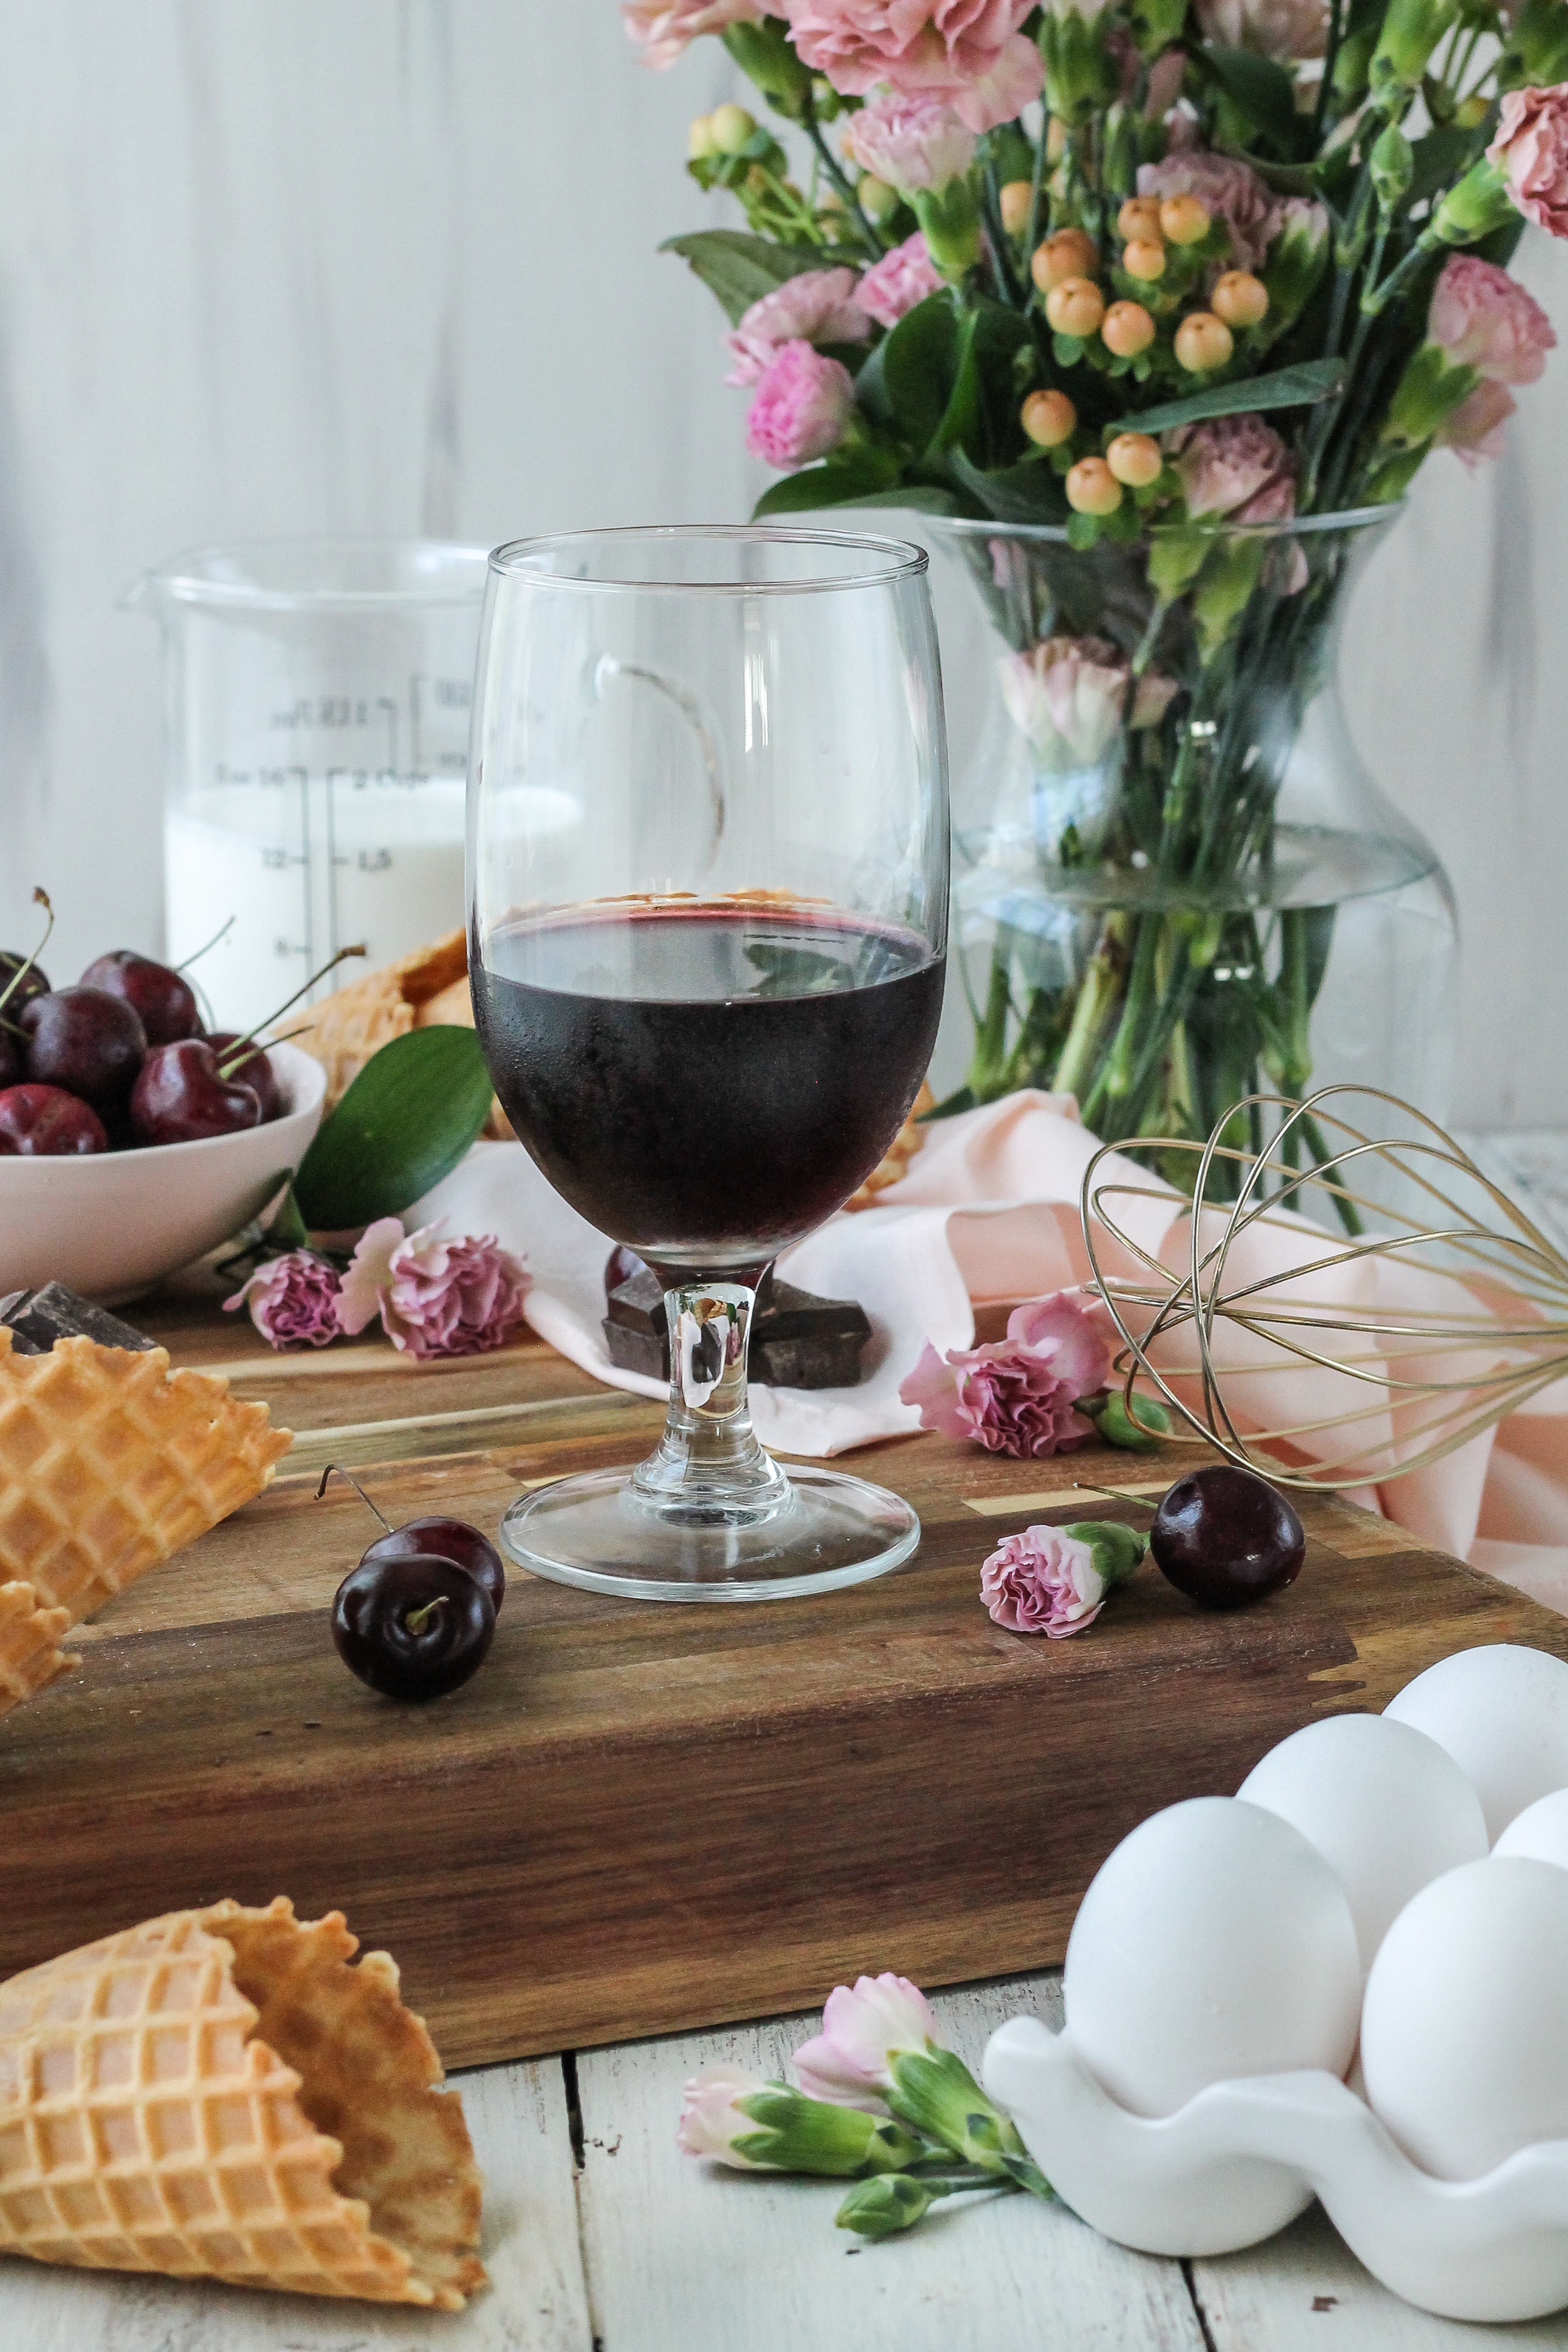 There was never a more delicious way to beat the heat.  Introducing Fudge-Swirled Red Wine & Black Cherry Ice Cream.  Find the recipe on www.pedanticfoodie.com!